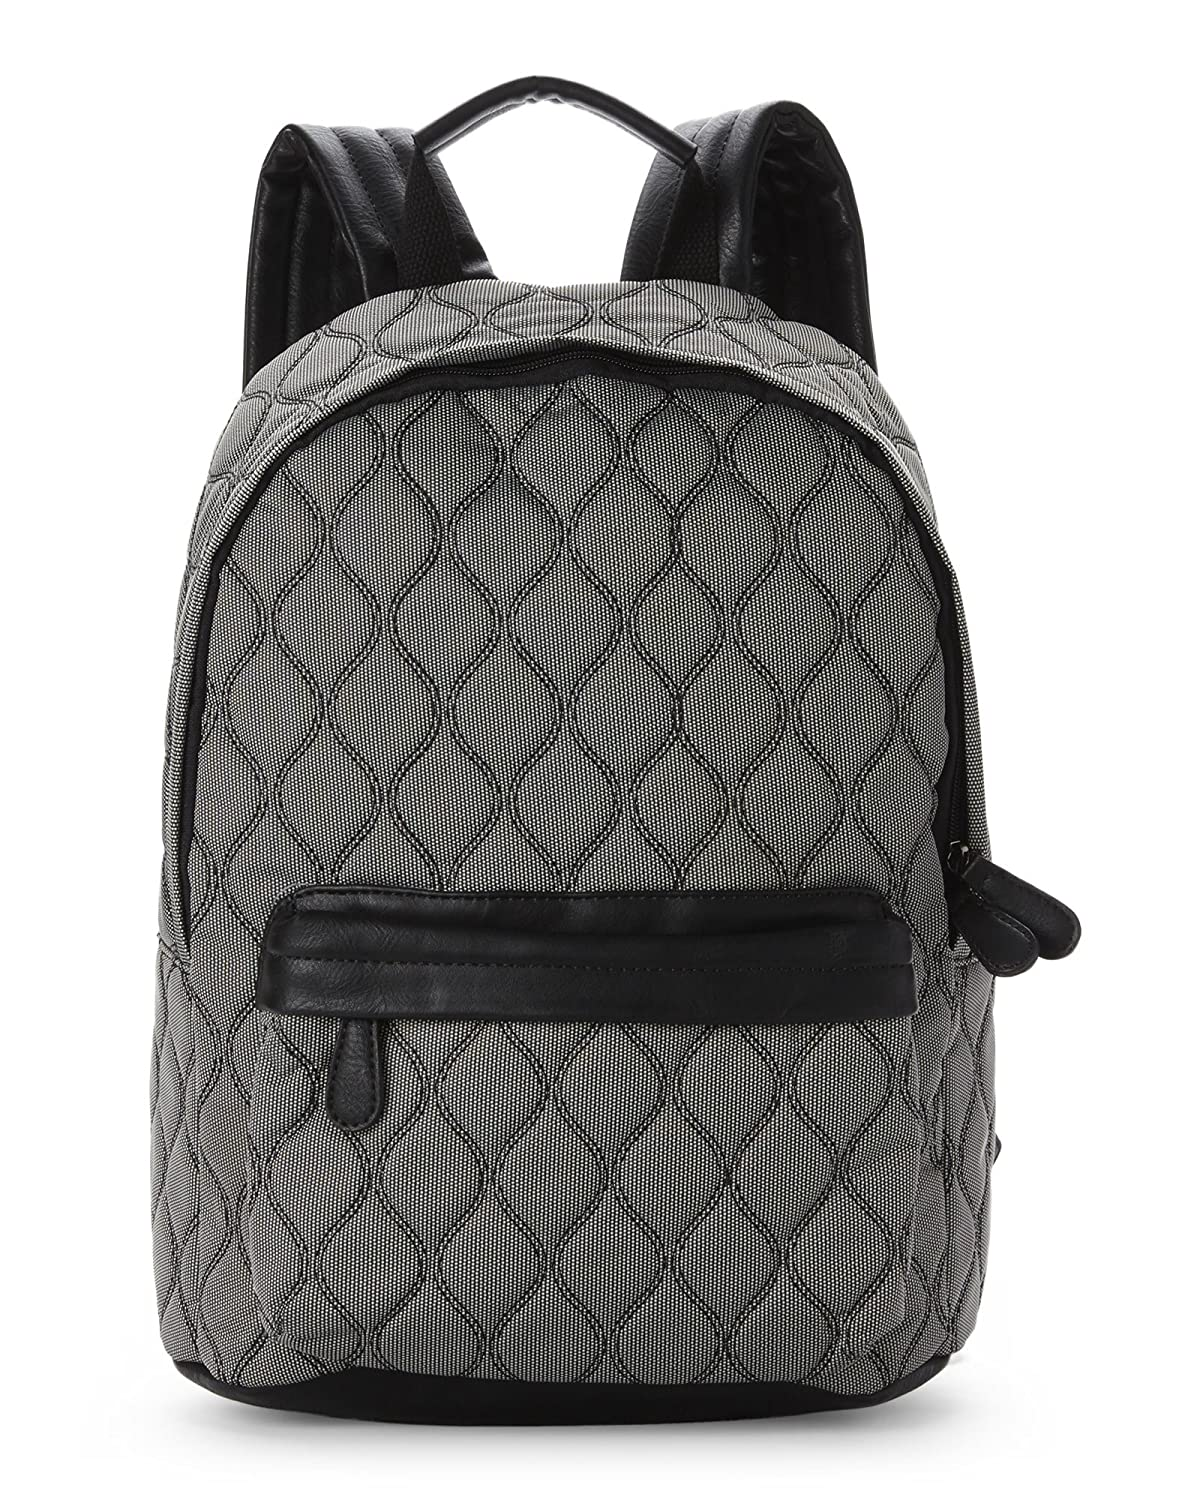 Nila Anthony Womens Quilted Backpack